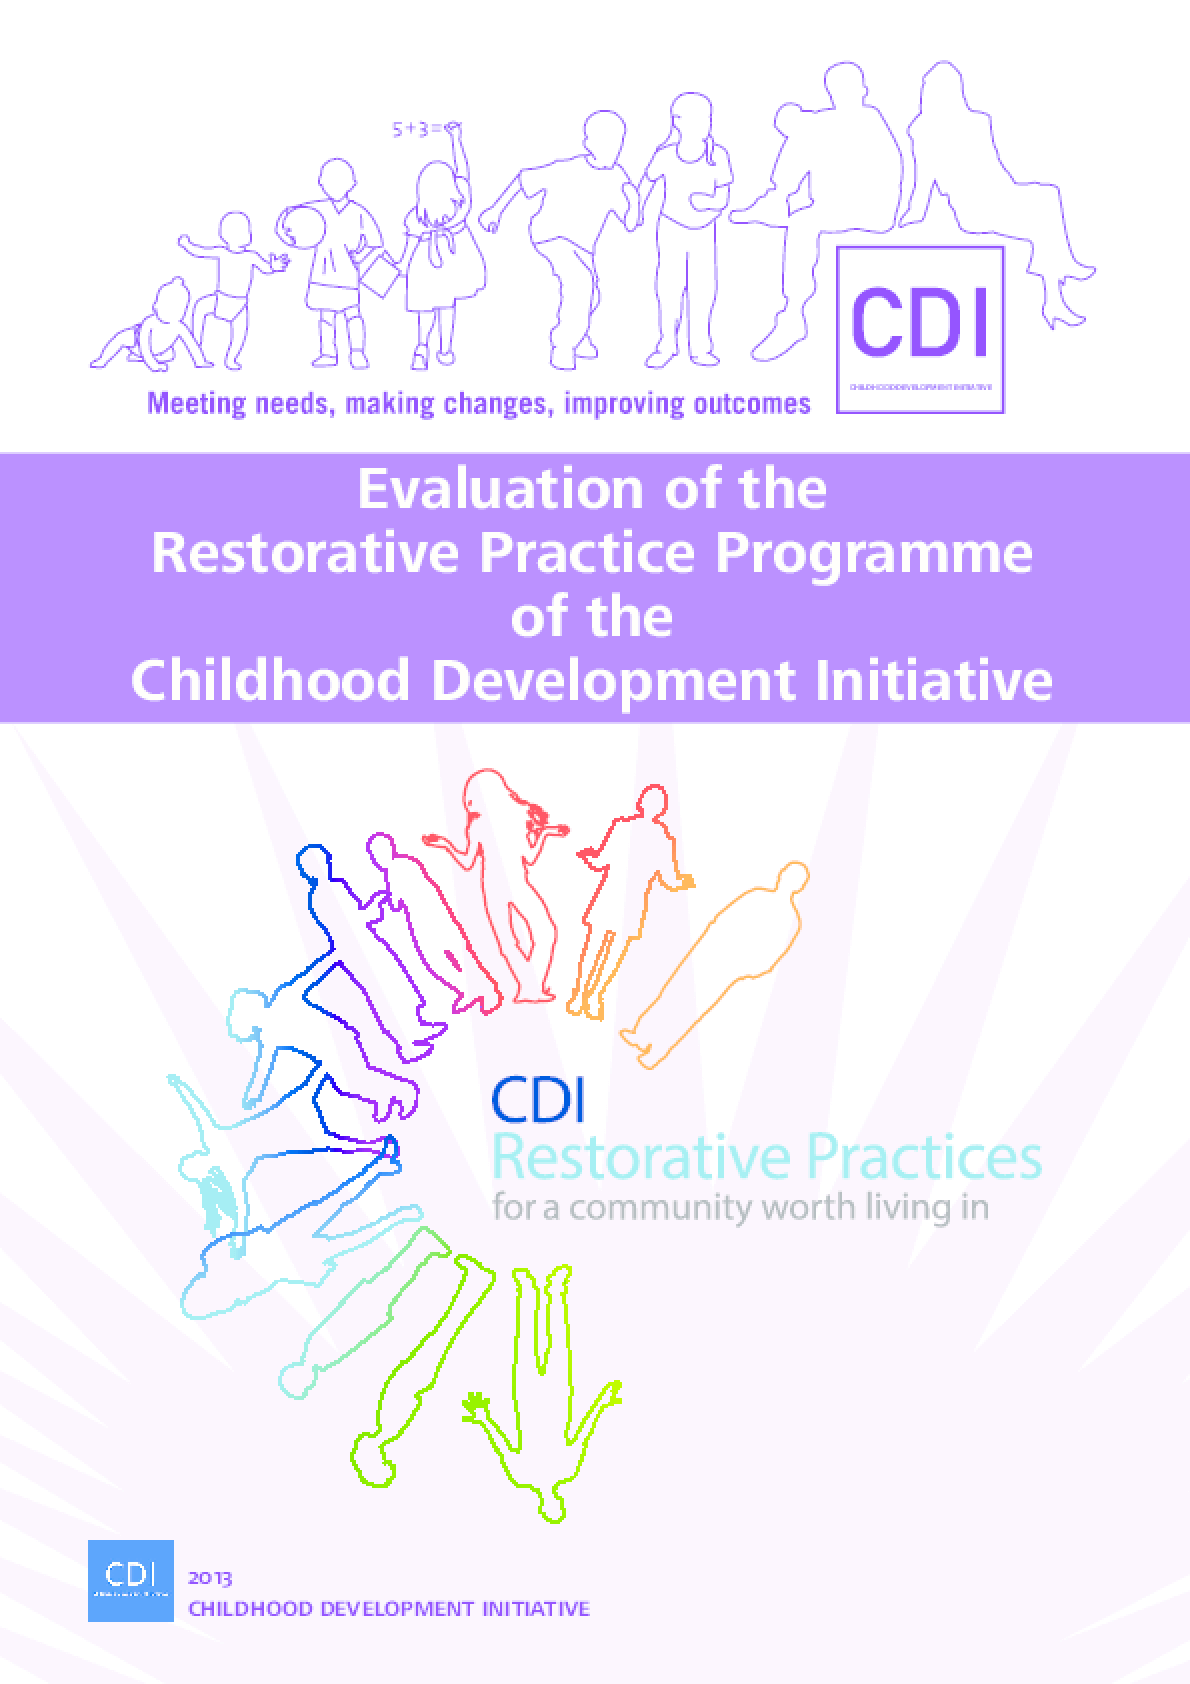 Evaluation of the Restorative Practice Programme of the Childhood Development Initiative